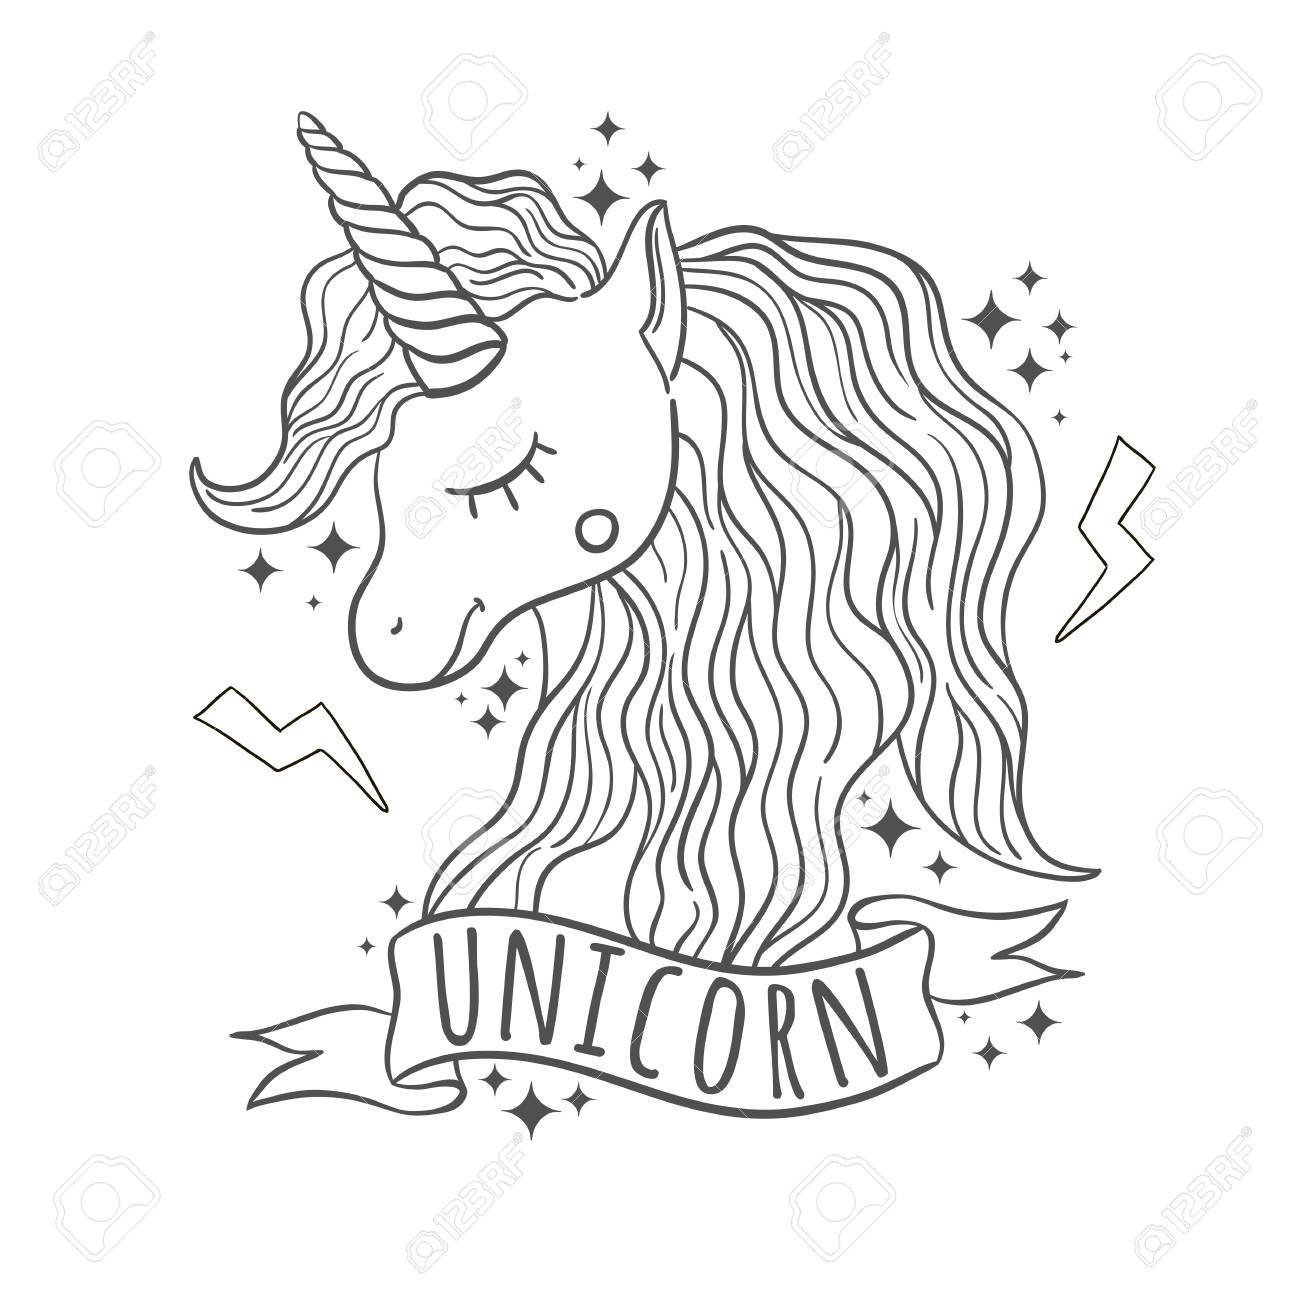 Cute black and white unicorn for prints in white background hand draw illustration stock